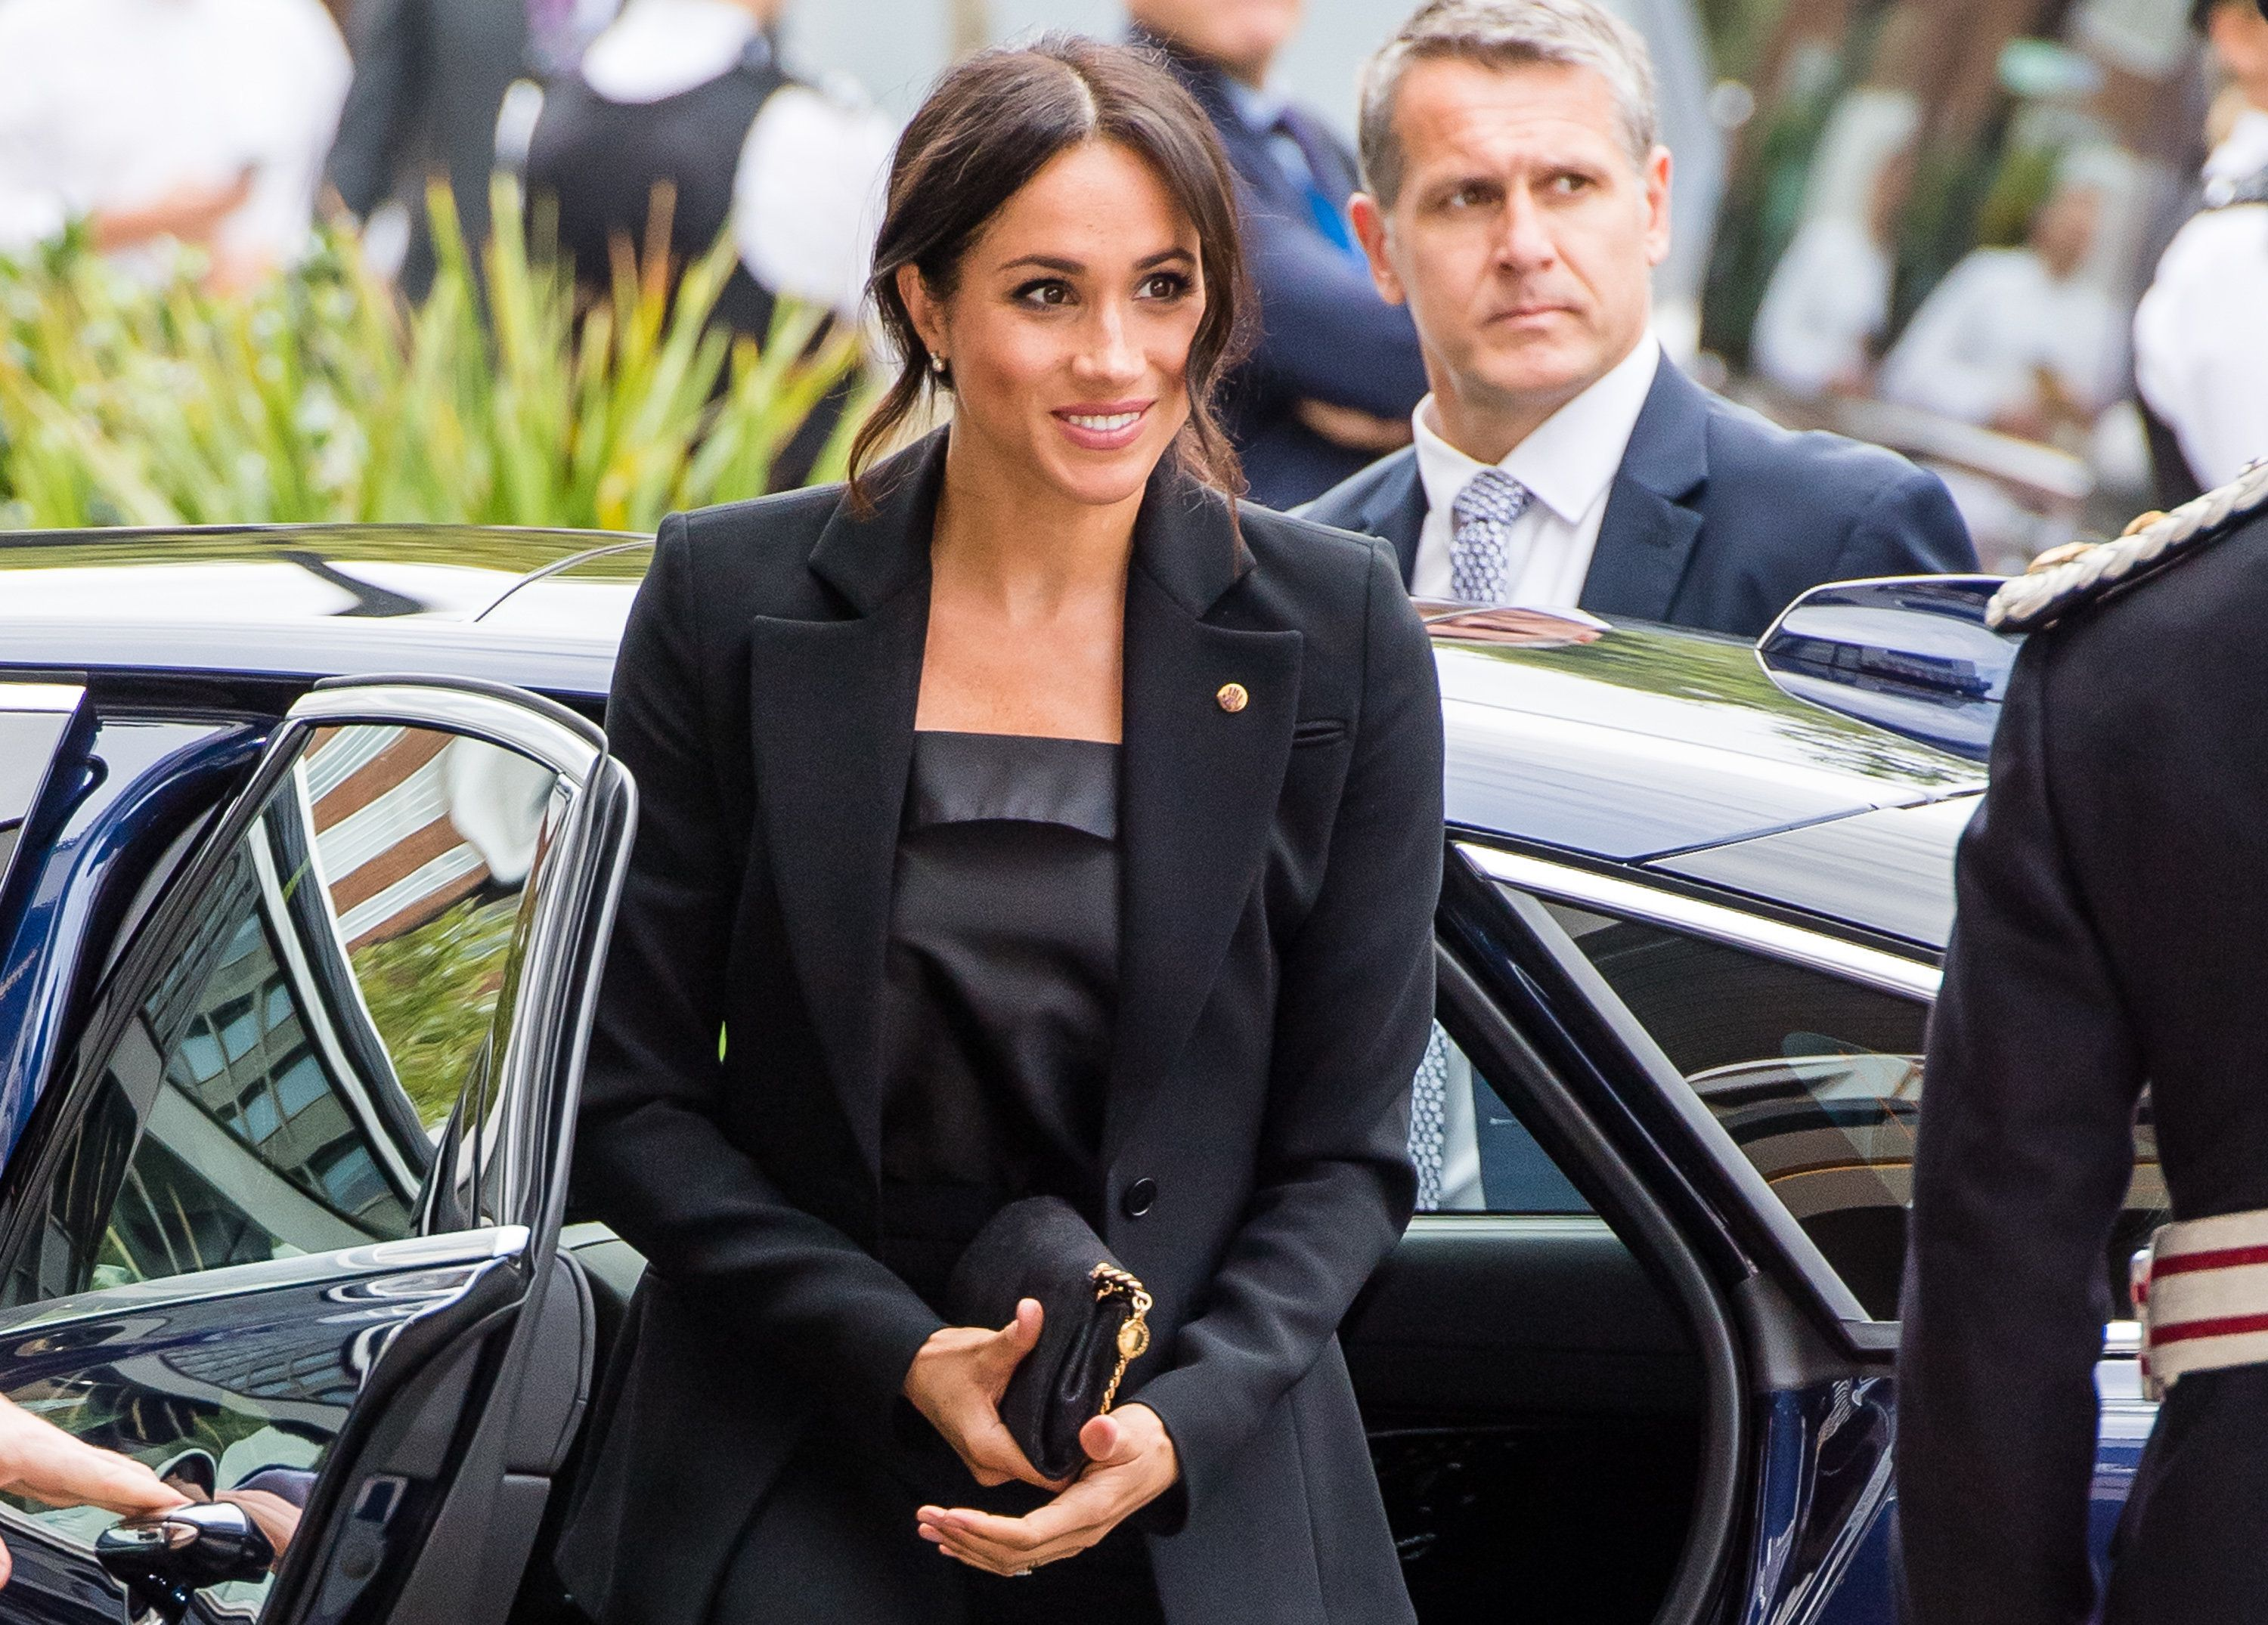 Meghan Markle Suits Up For A Night With Prince